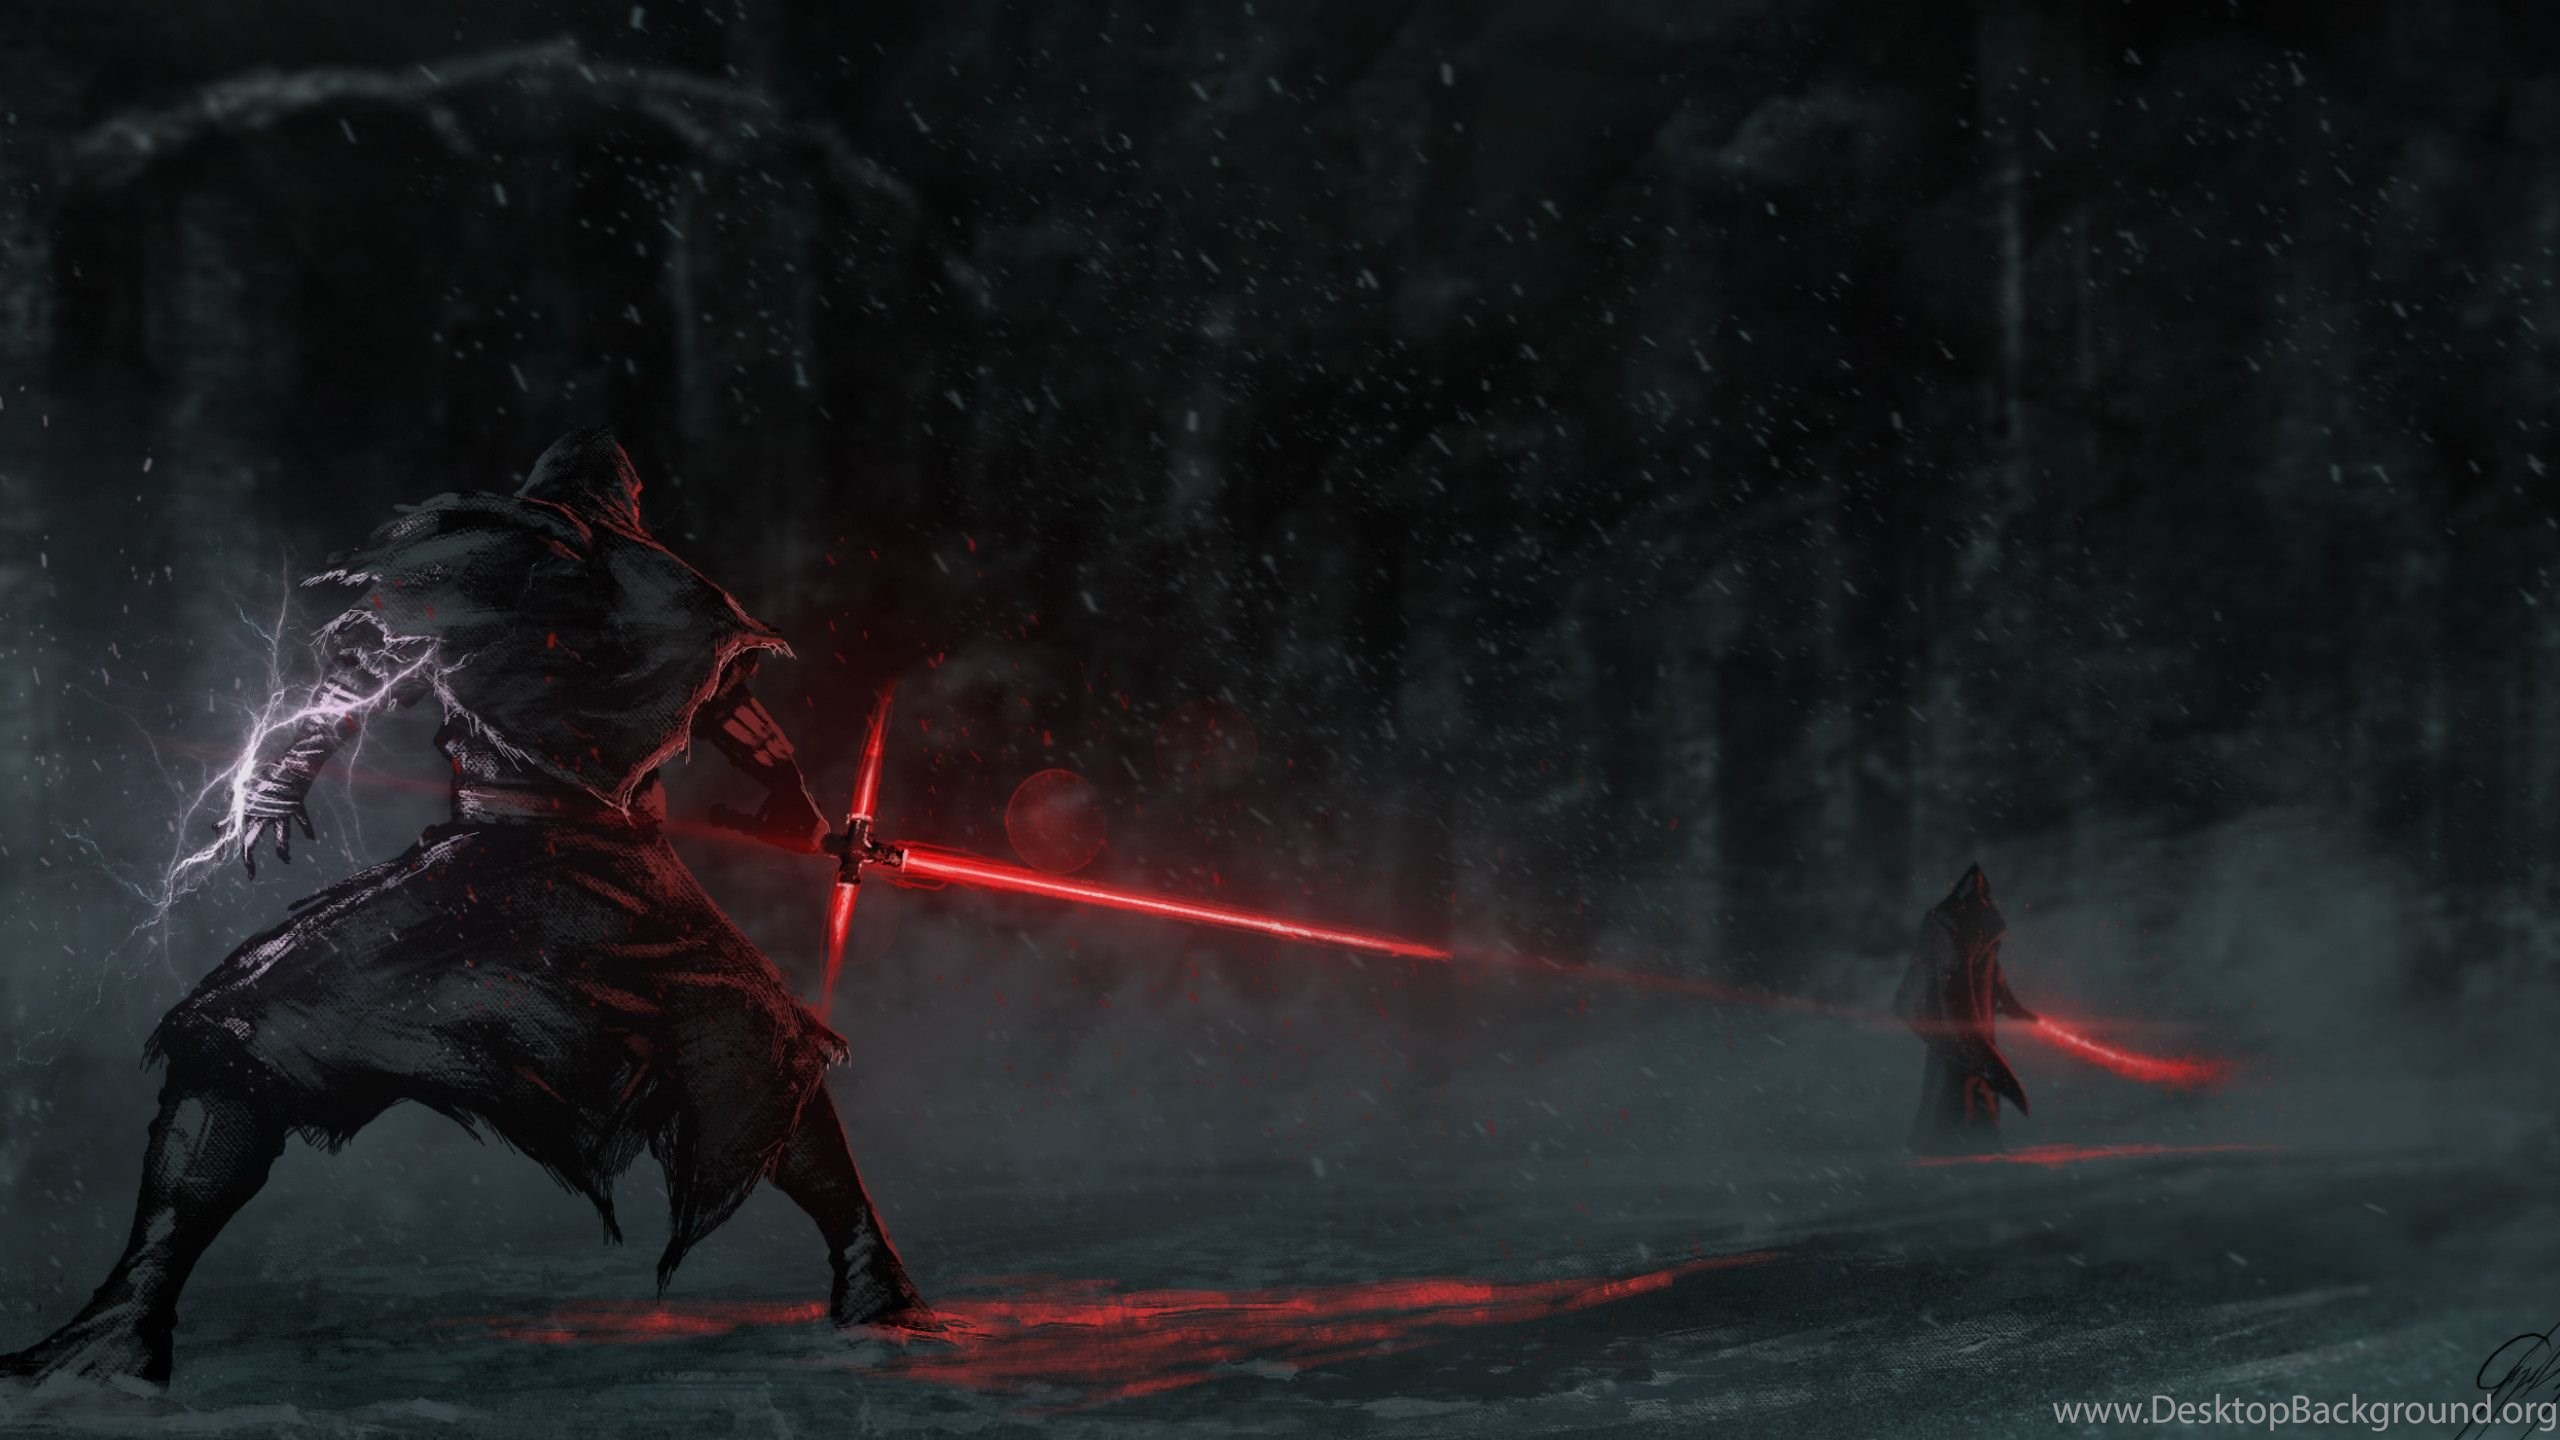 Dark Sith Lord Wallpapers 2560x1440 Resolution Wallpapers Hd Pub